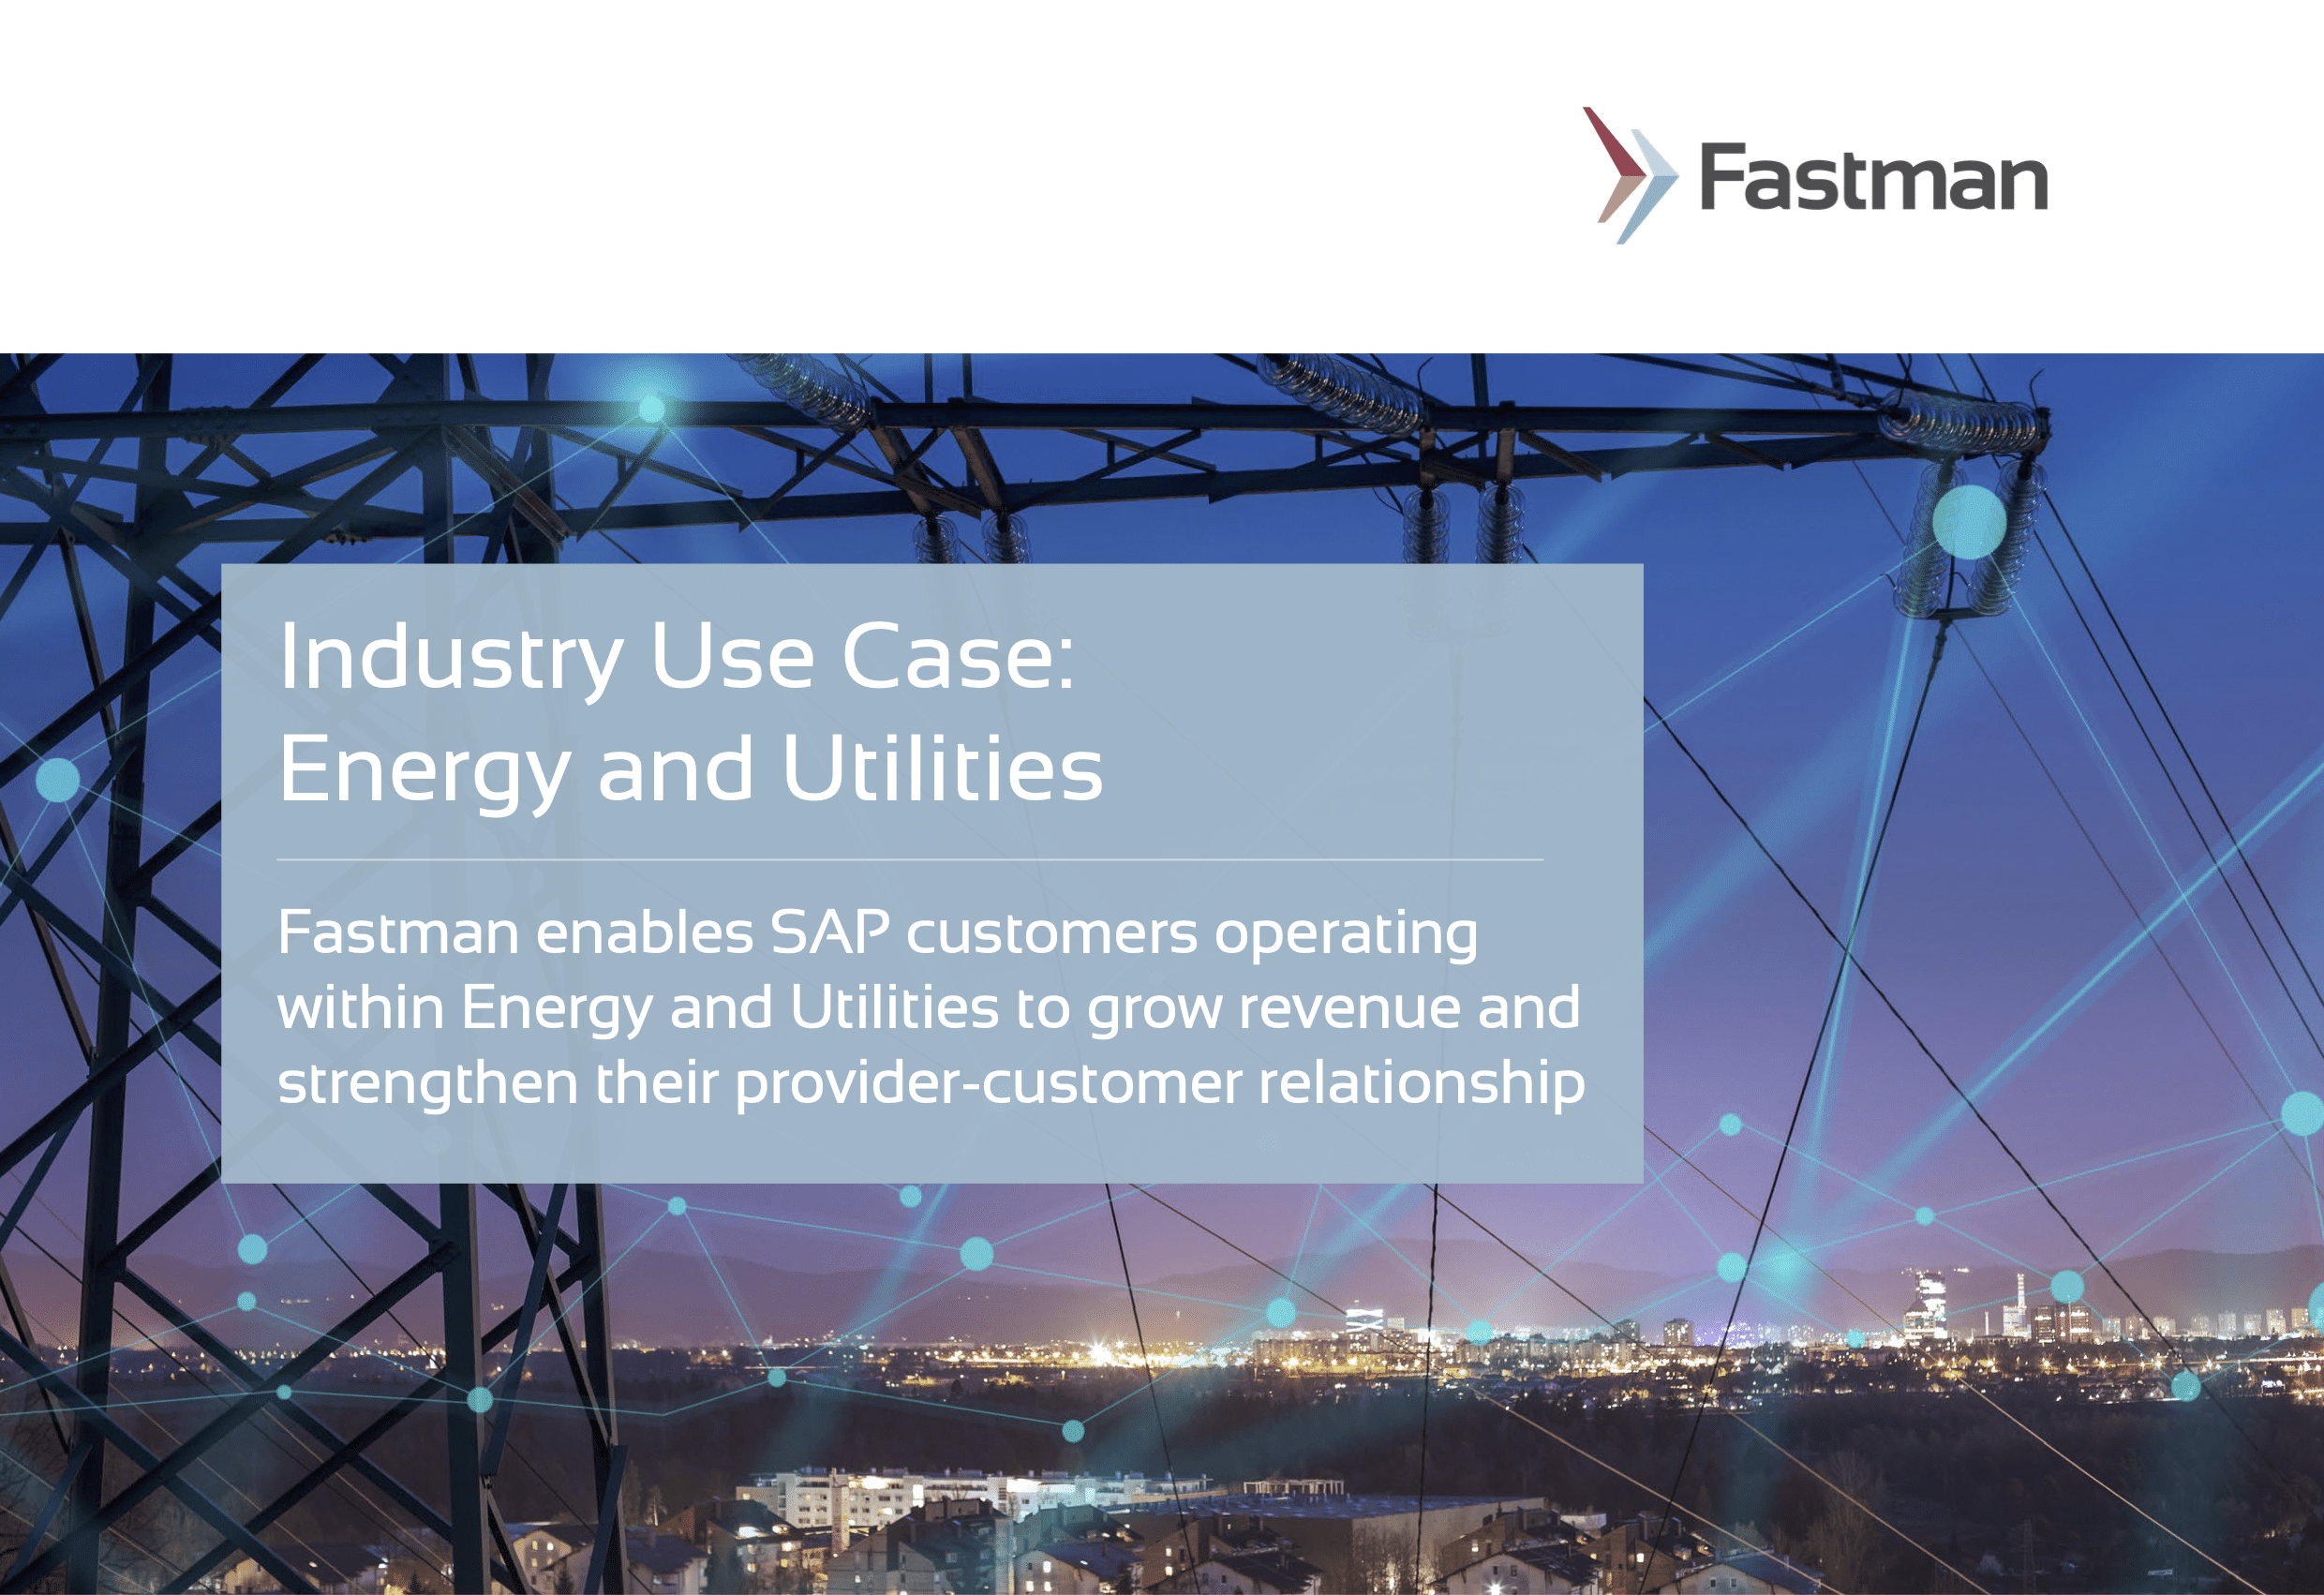 Fastman-Industry-Use-Case-Energy-and-Utilities-v1.0-1